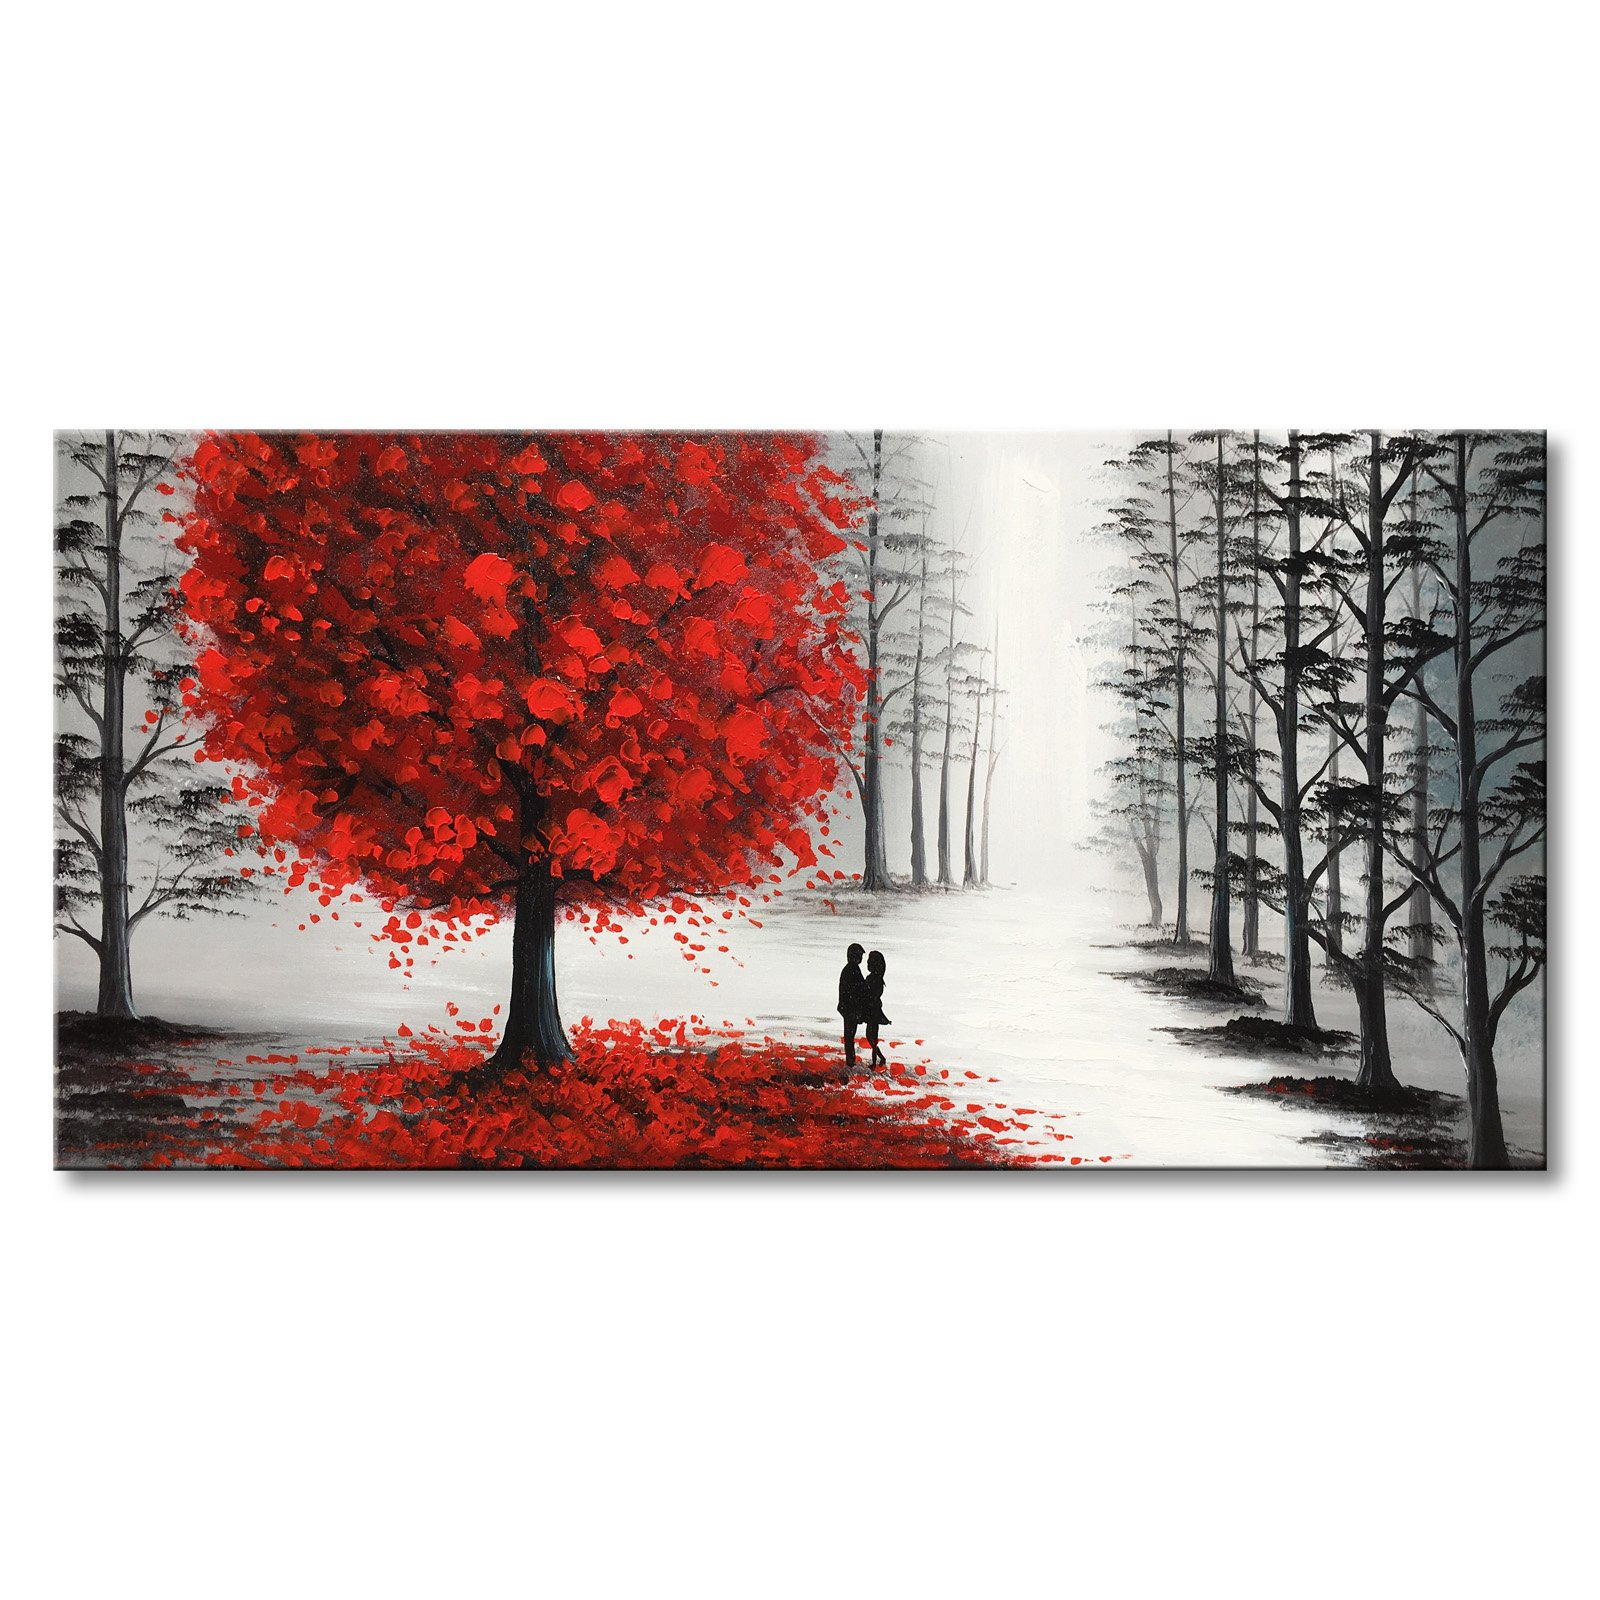 Large Hand Painted Black and White Oil Painting Landscape Canvas Wall Art with Red Tree for Living Room